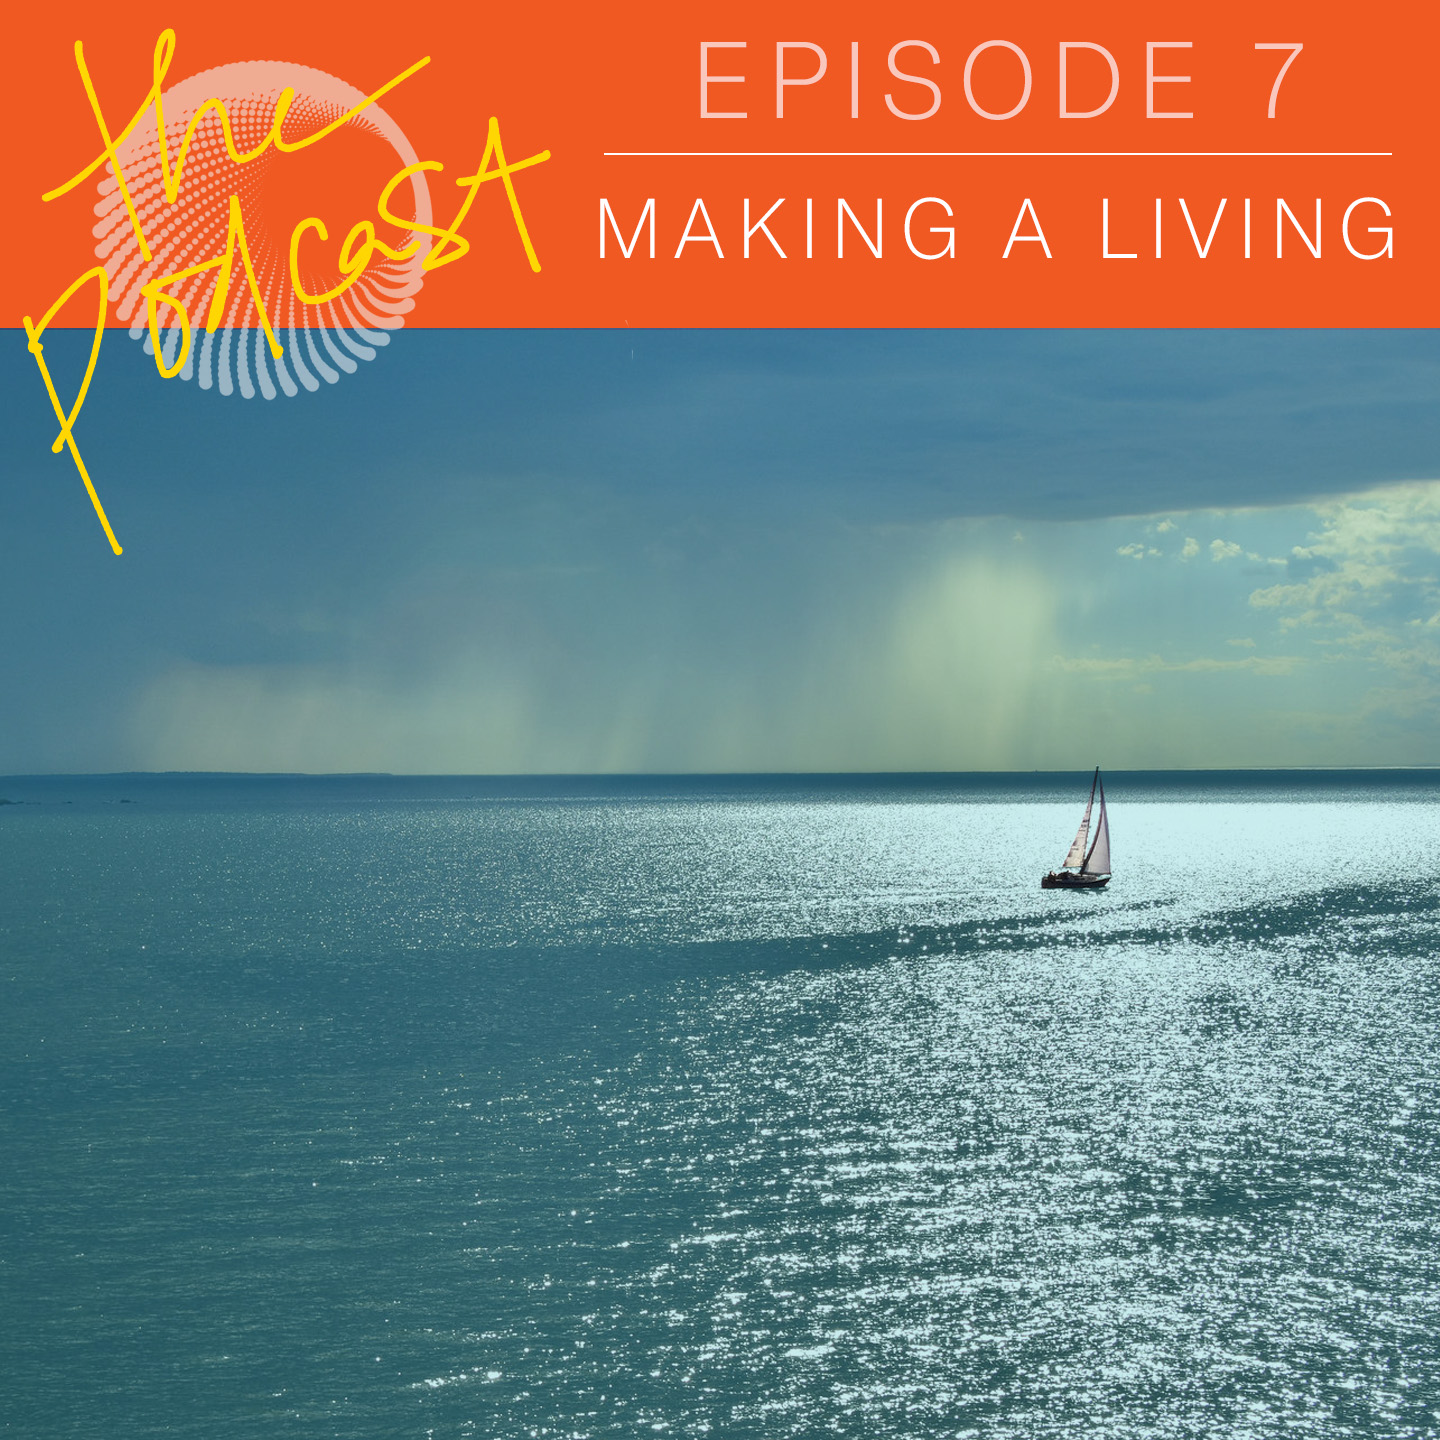 Episode 1.07: How to Make a Living   HOW TO LEAD CHANGE AND BRING ENERGY WHEN YOU'VE GOT TO PAY THE BILLS  Tim and Tuesday invite us 'backstage' to share revelations and lessons along the path of making their work of systems change into a bankable business.  For show notes, visit the episode page.  || November 27, 2018